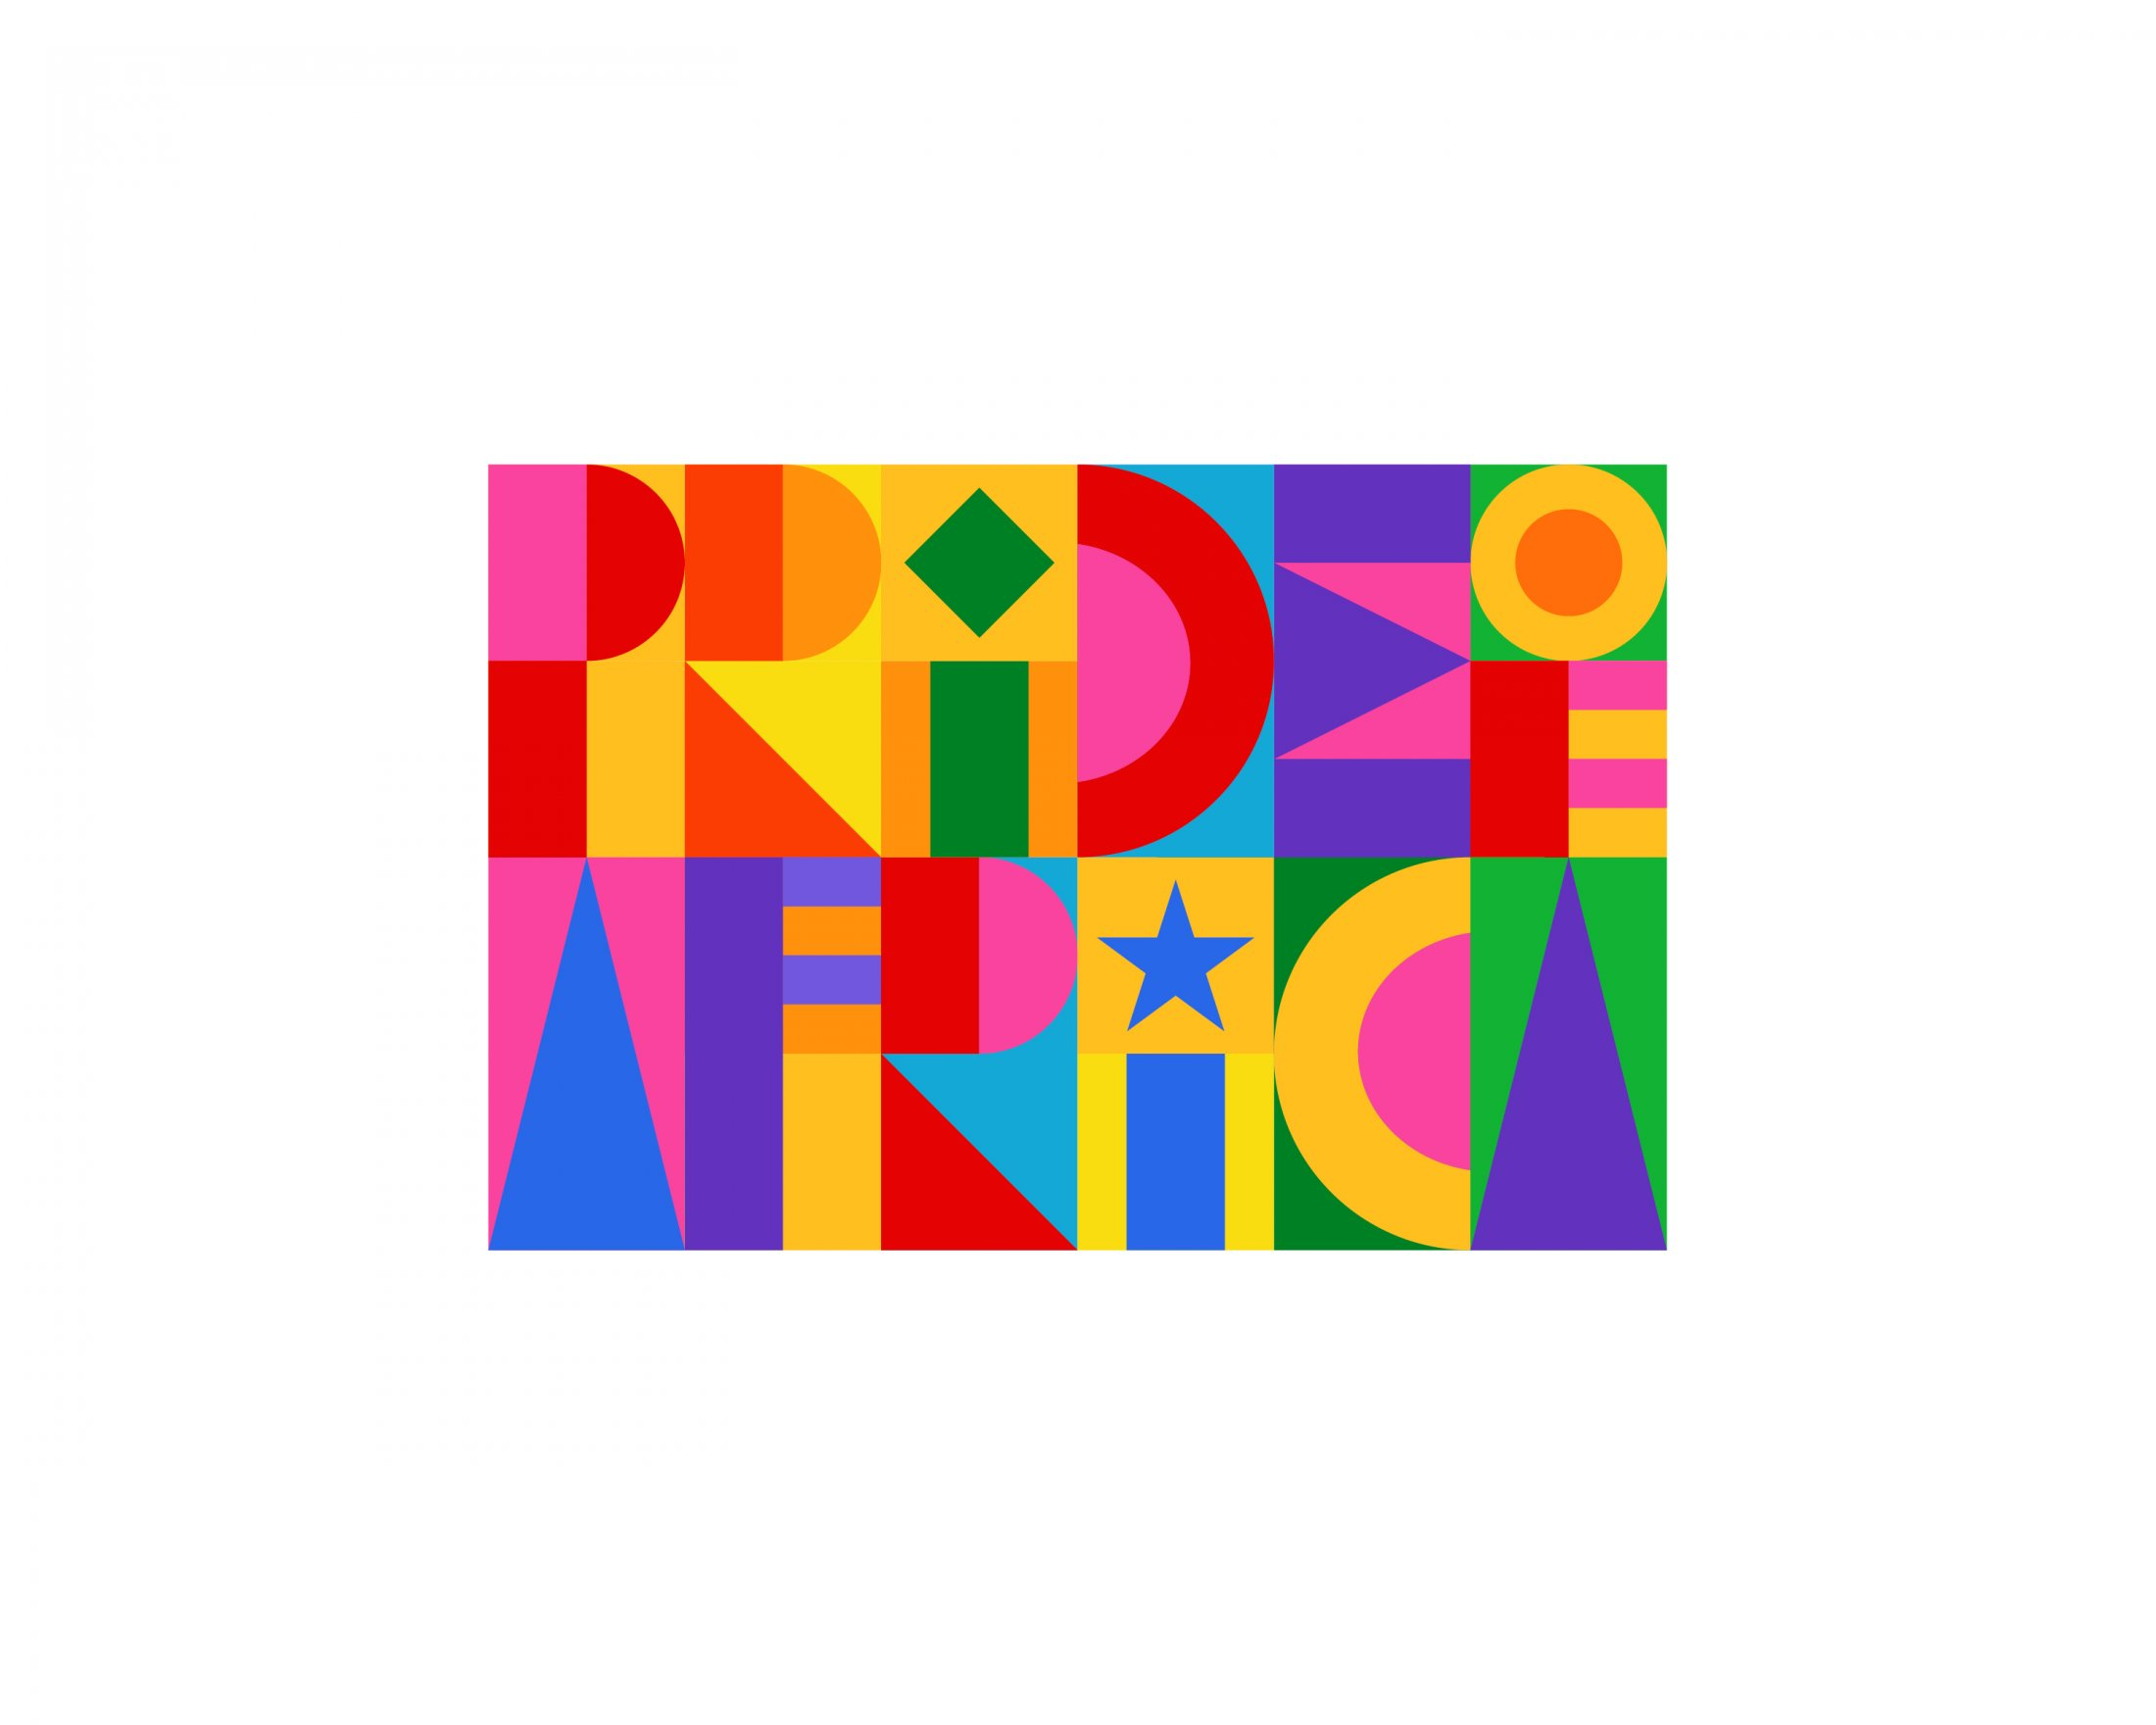 Thumbnail for Pride of Africa logo